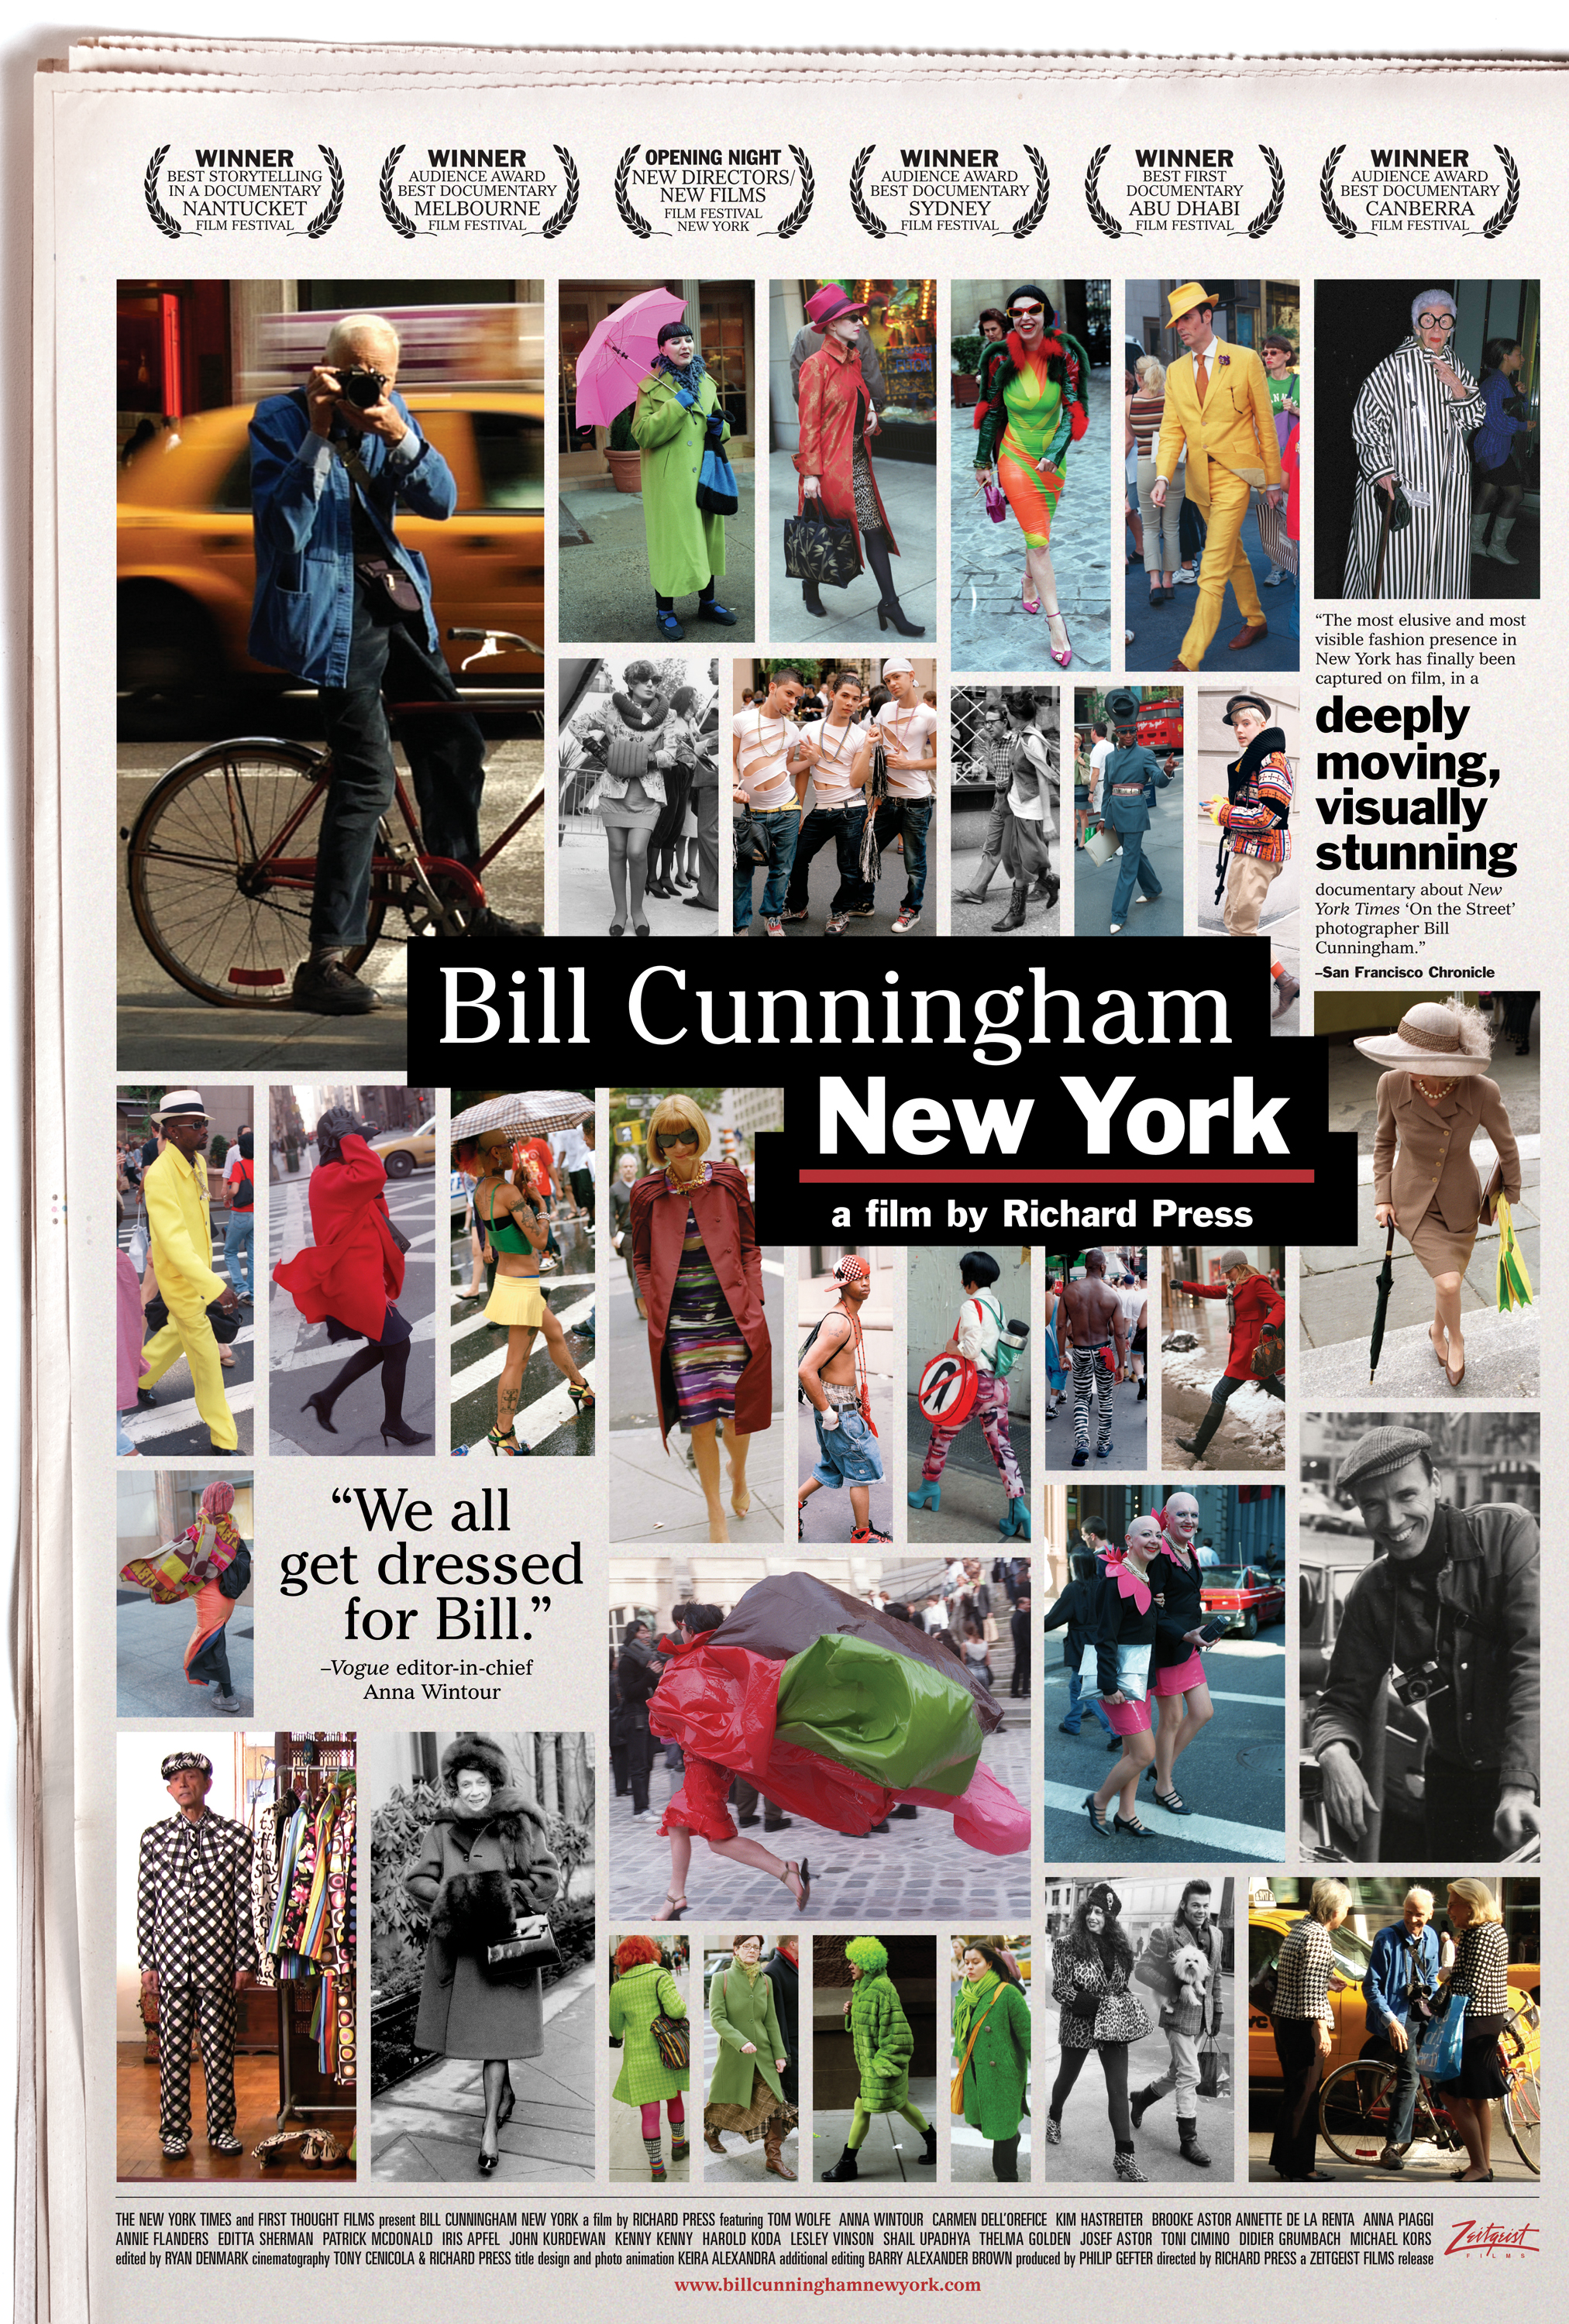 BILL CUNNINGHAM NEW YORK poster. A film by Richard Press. A Zeitgeist Films release. Photo credit: First Thought Films / Zeitgeist Films